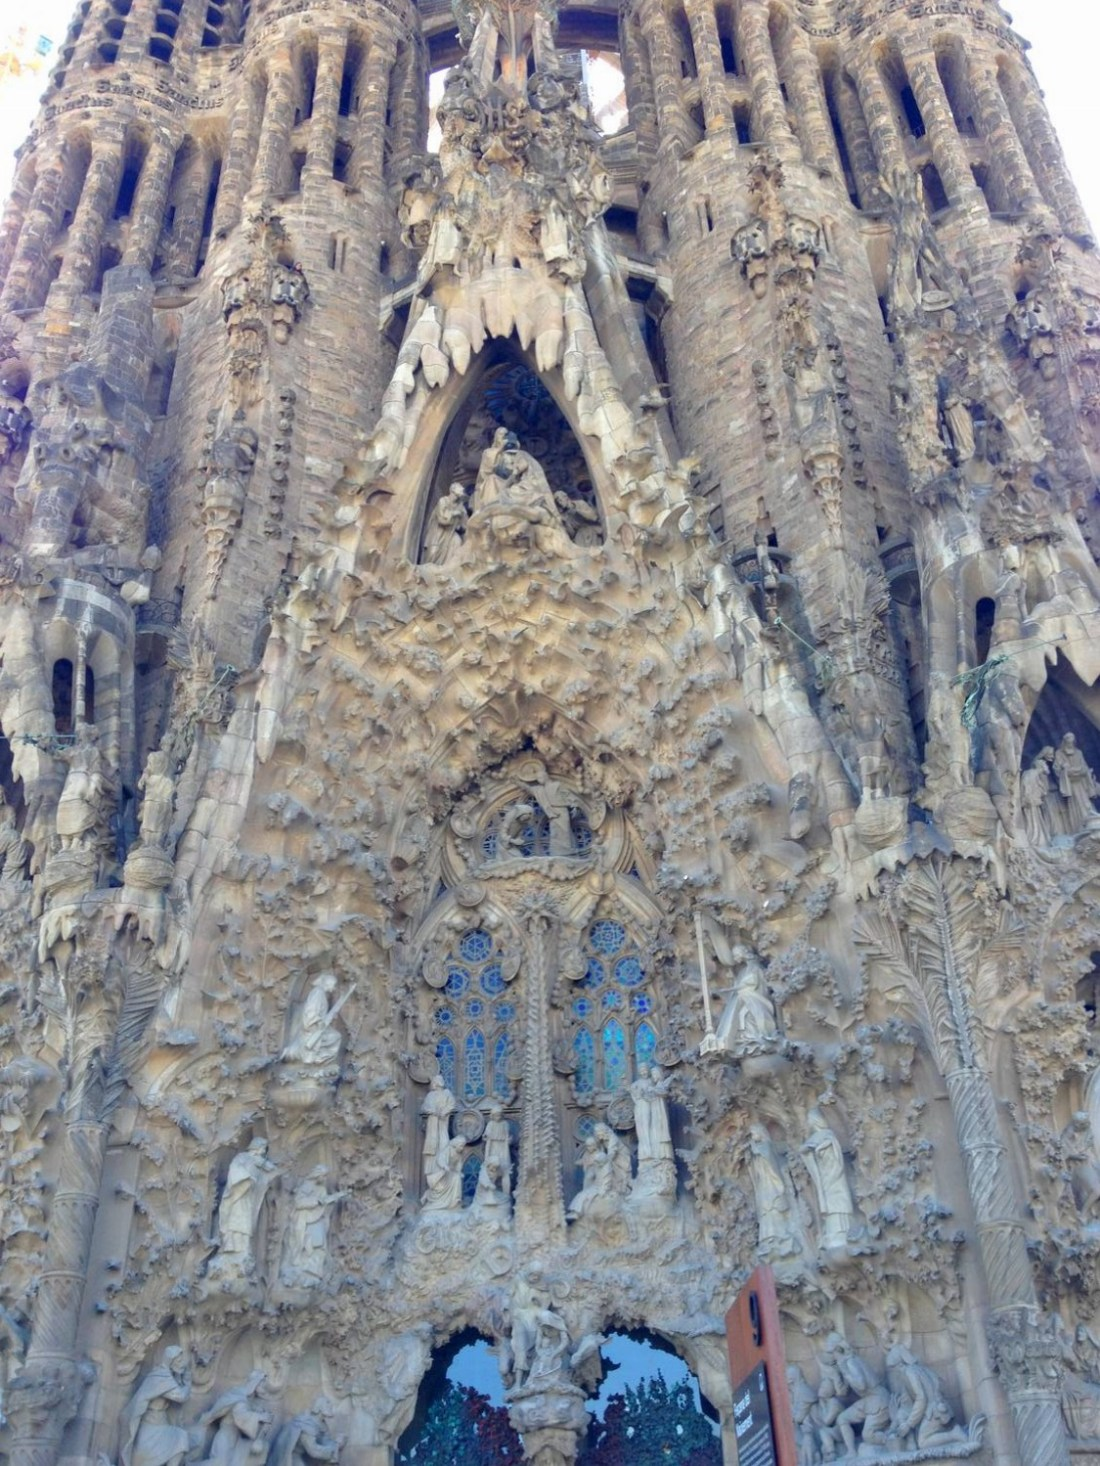 Sagrada Familia - Barcelona, Spain